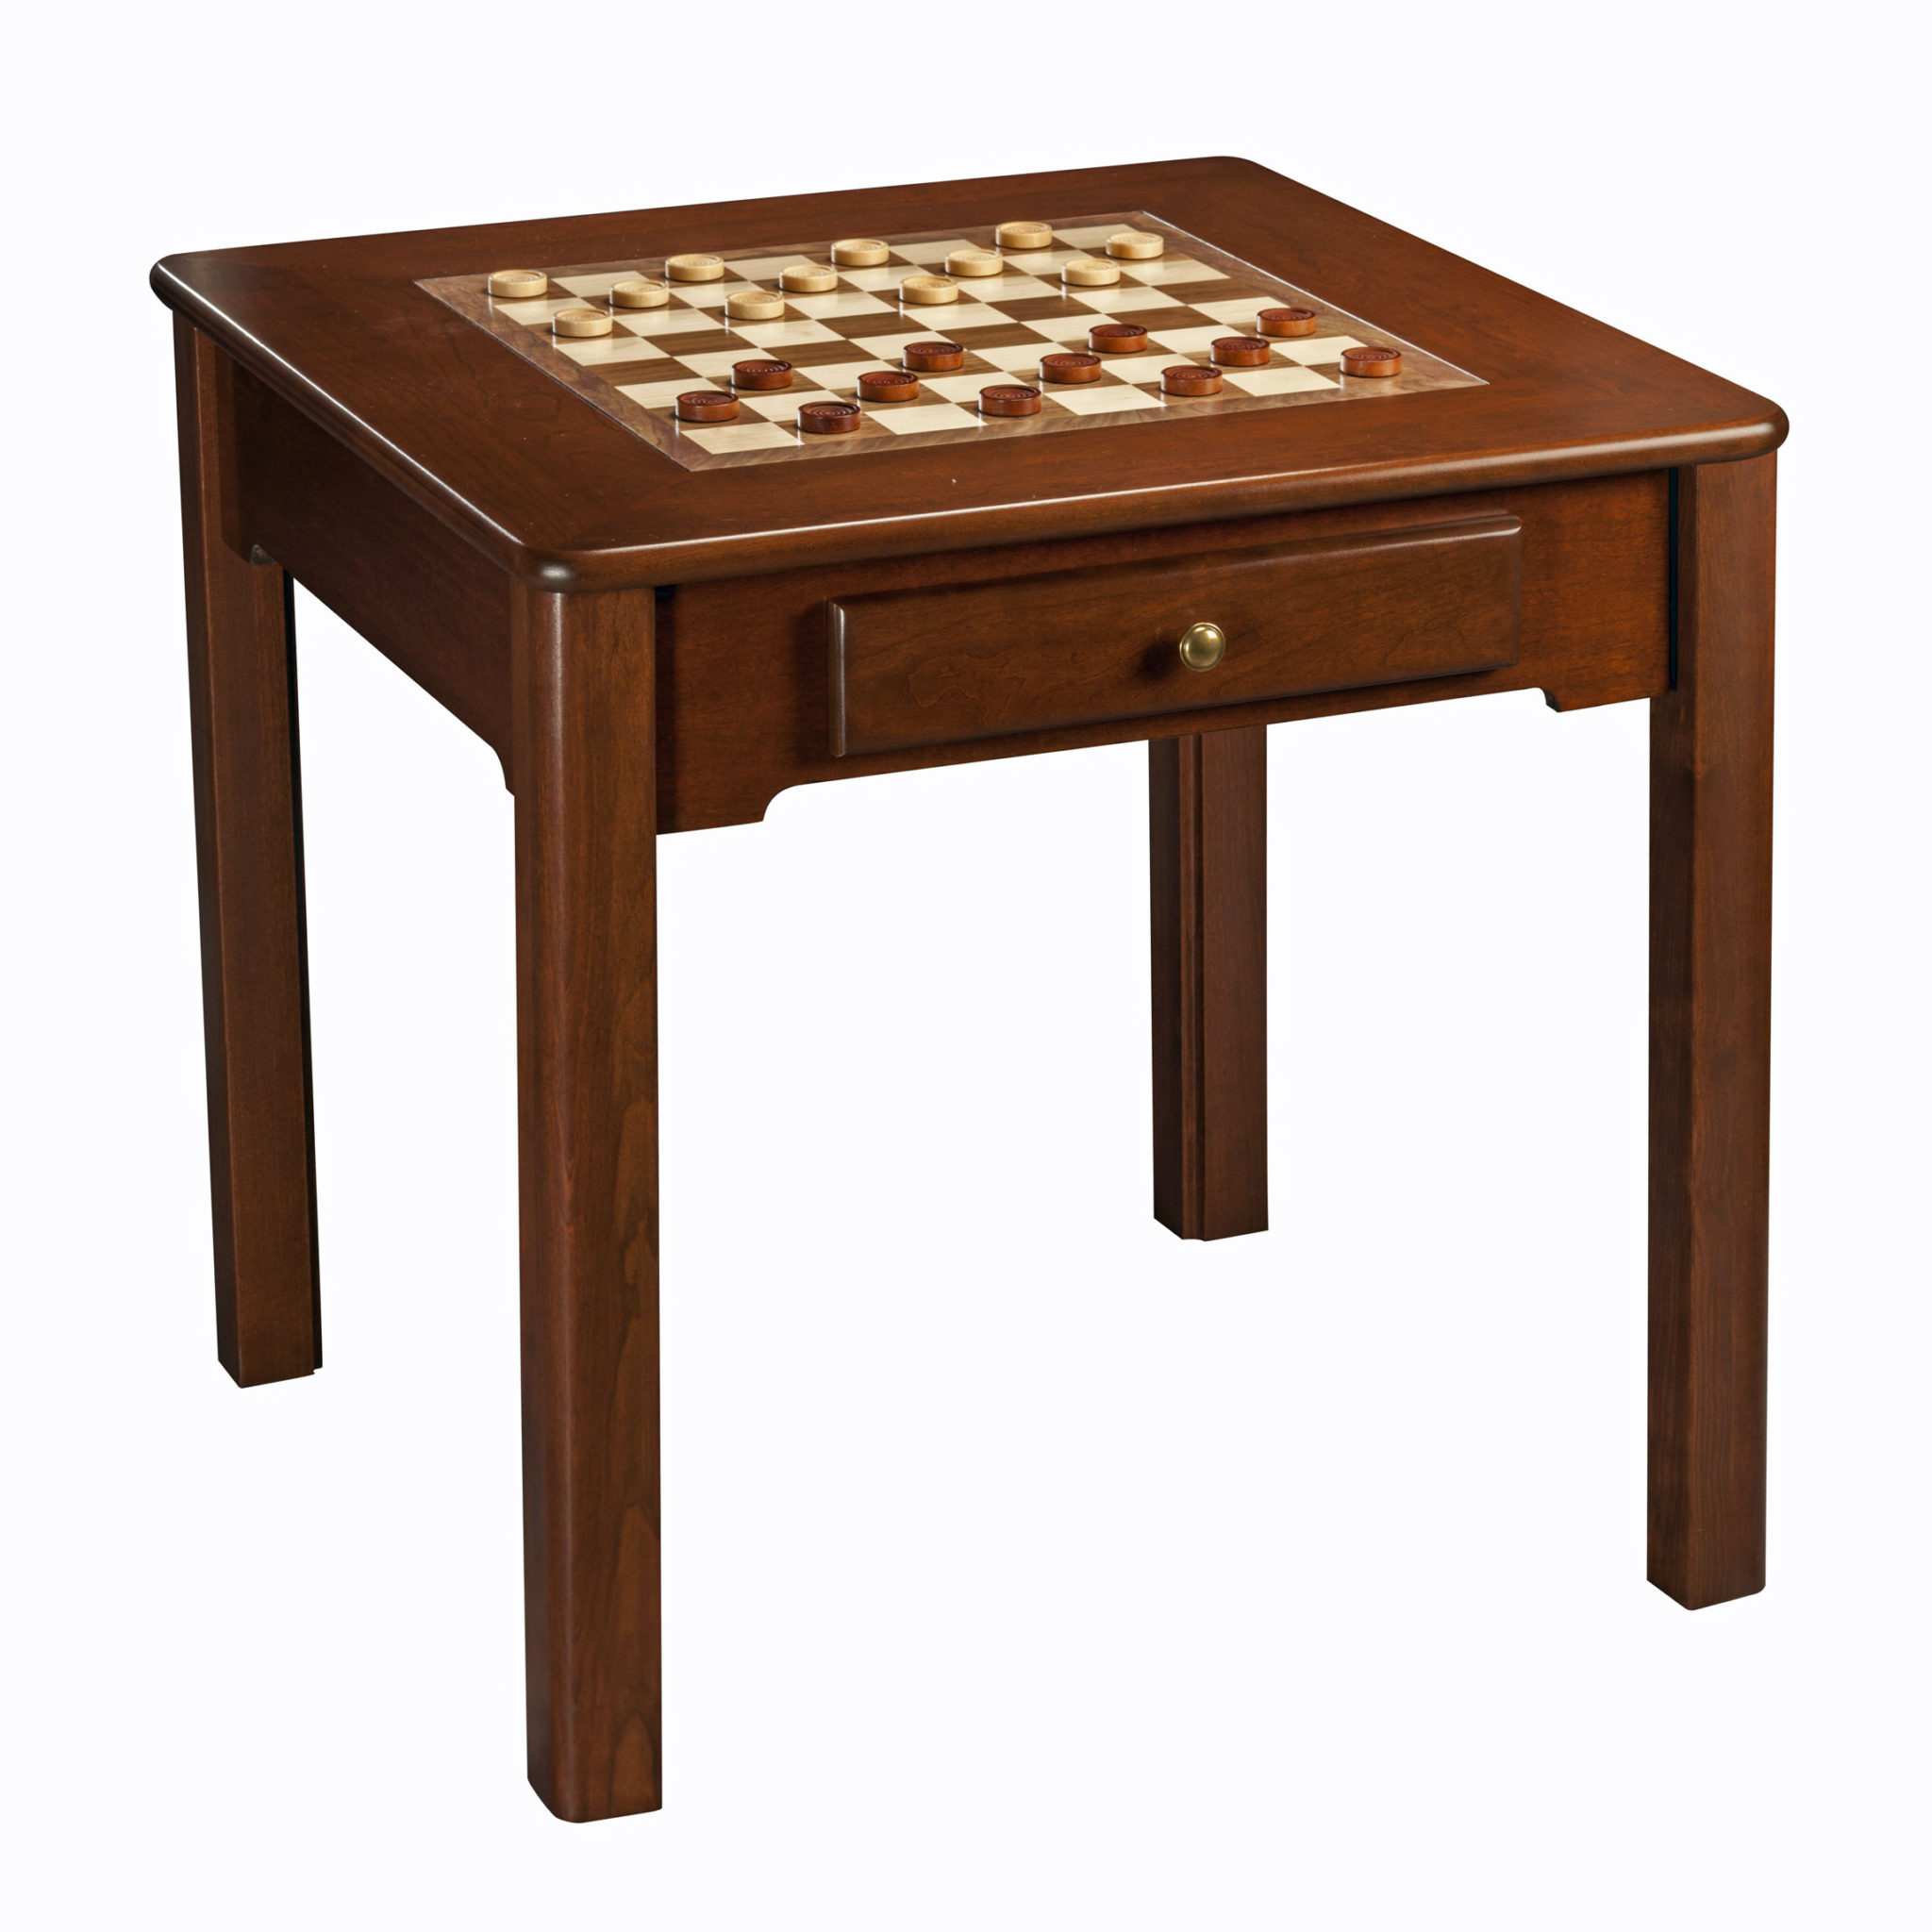 Classic game table solid cherry wood chess checkers backgammon made in usa wood - Wooden chess tables ...